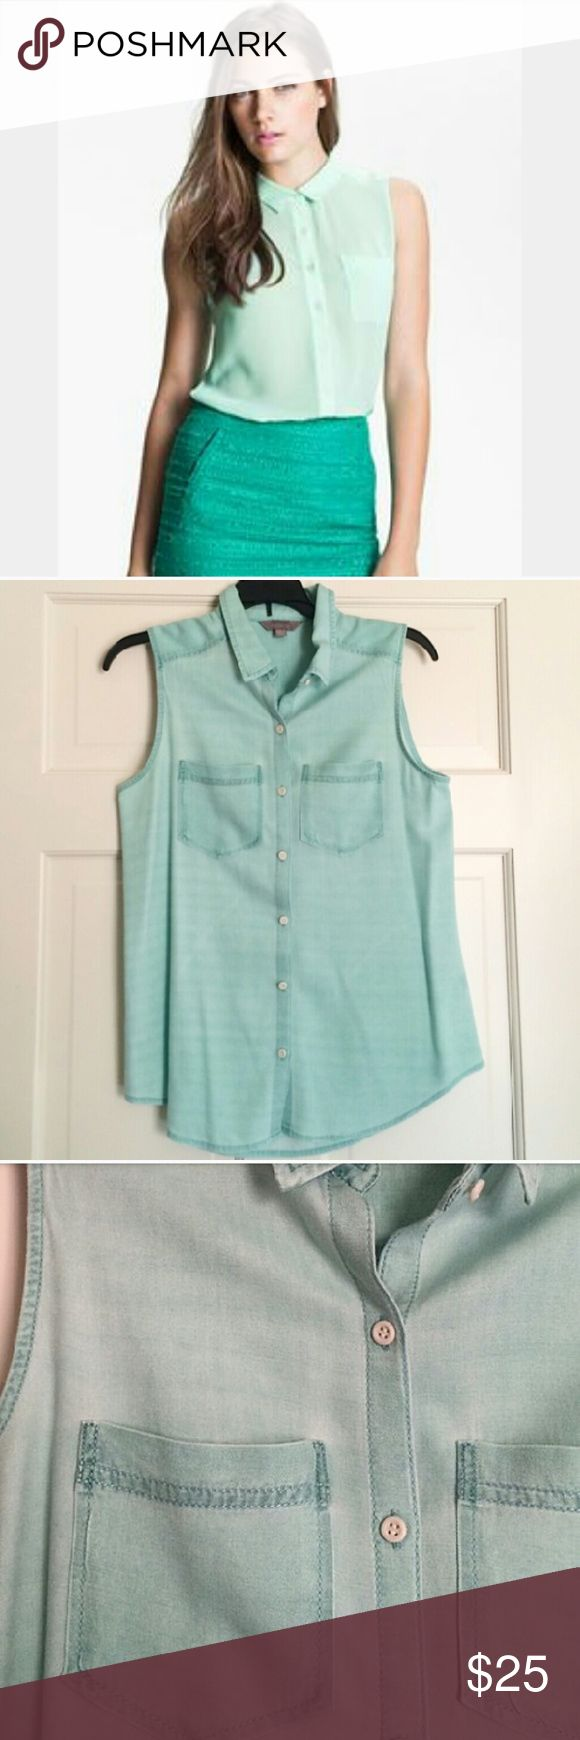 🆕List Nordstrom Rubbish Mint Green Sleeveless Top ✳Nordstrom Rubbish brand ✳Sleeveless Chambray Button Down top ✳Mint Green ✳2 Front Pockets ✳Collared neck ✳Loose fitting ✳Size Small ✳Very soft and comfortable ✳Slight mark on bottom back (last pic) ✳In great condition. Gently worn a few times. ✳Perfect with jeans and chuck taylors for casual vibe or skirt and heels for a night out!  Stock photo for styling purposes only. Not same top.  ☑OFFERS WELCOME☑ ☑BUNDLE and SAVE☑ Rubbish Tops Button…